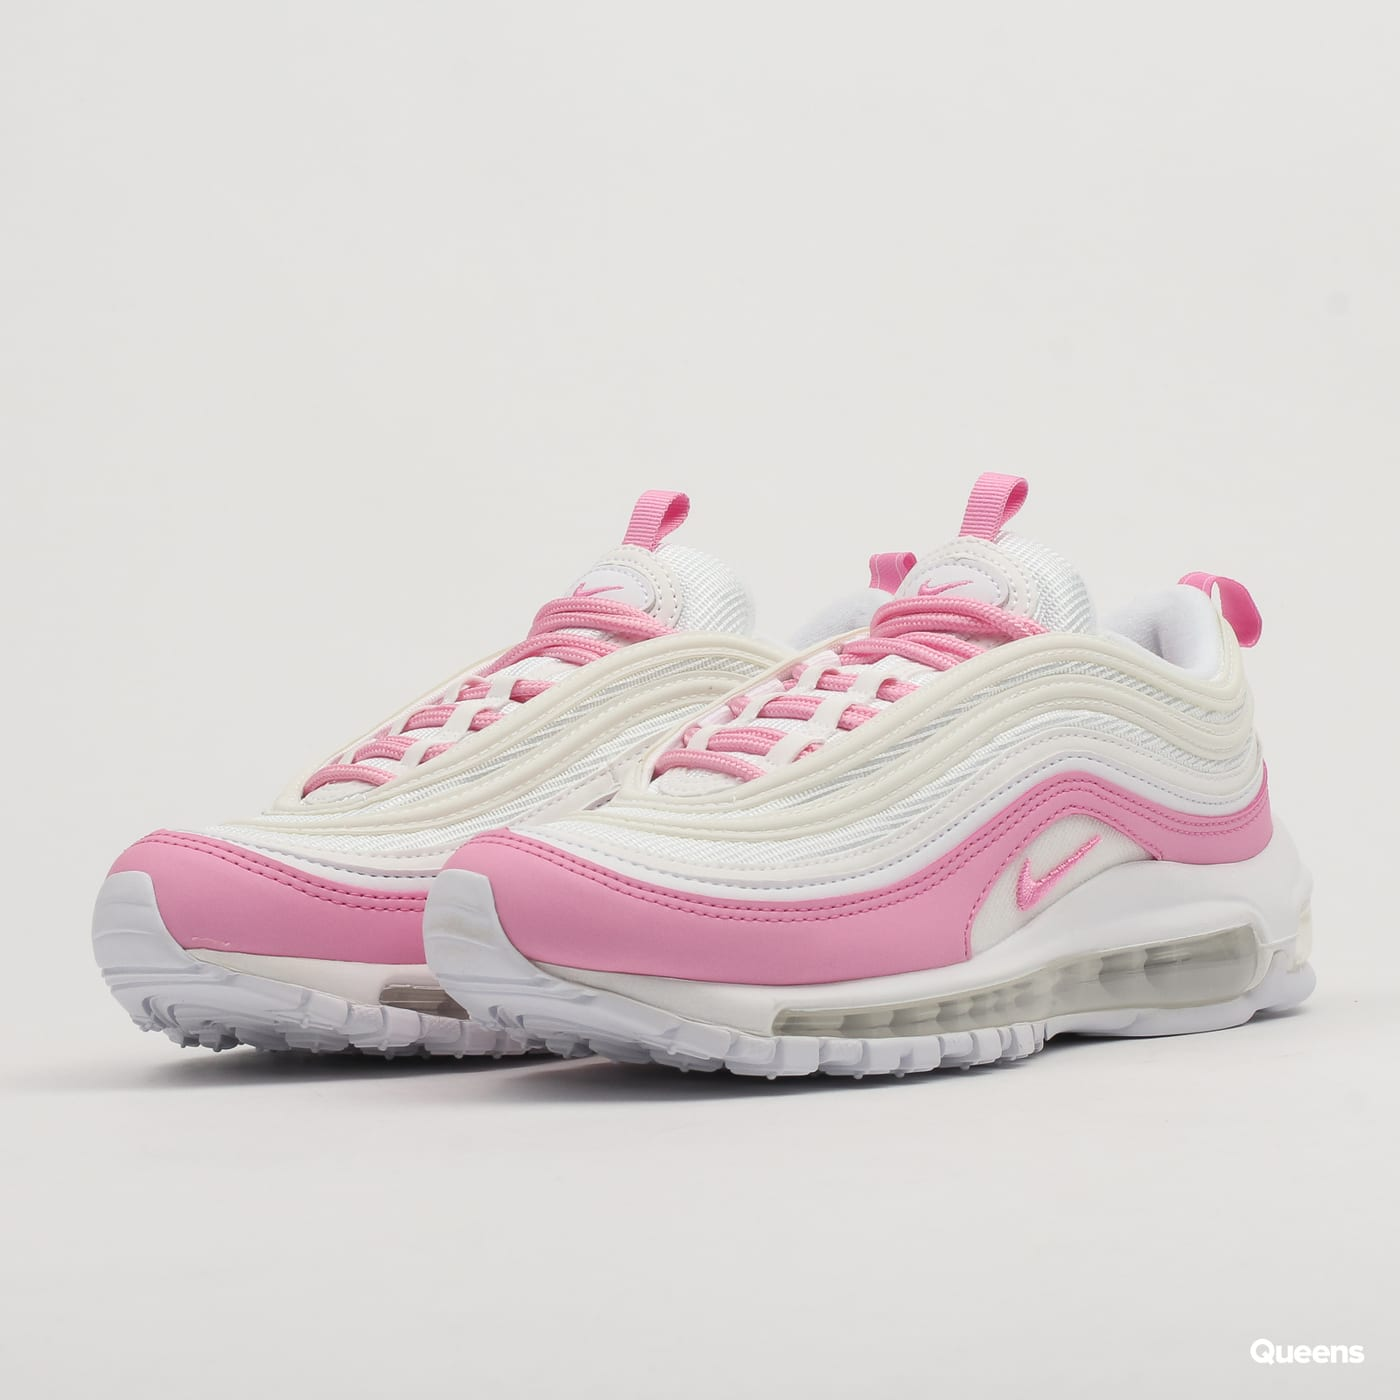 New Girls' Air Max 97 Shoes. Nike AU